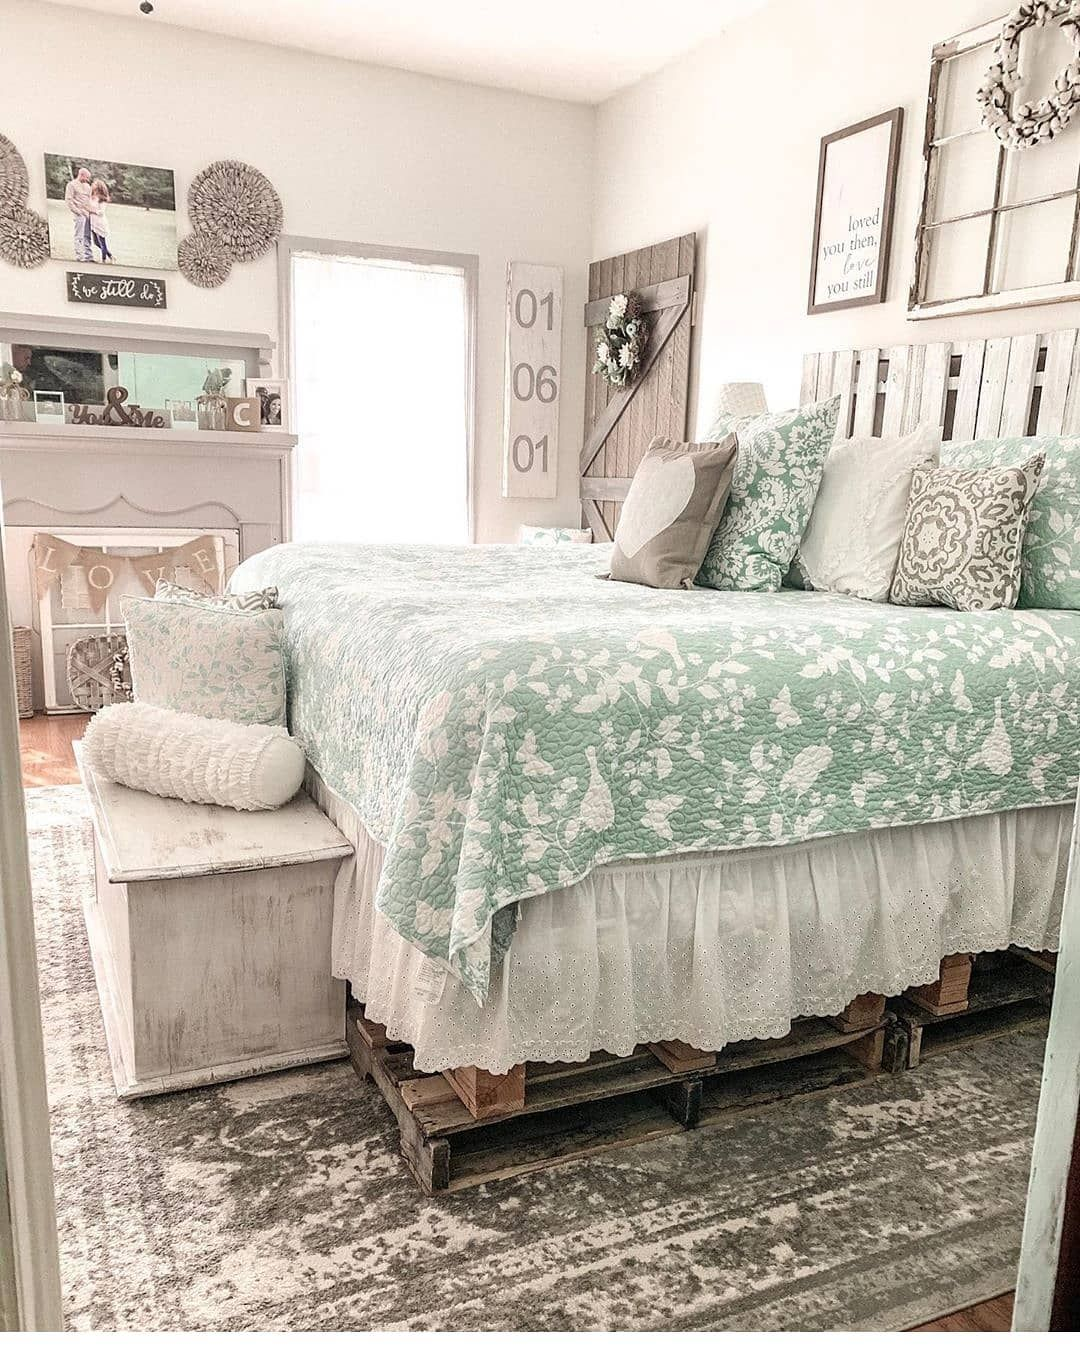 """Farmhouse Only on Instagram: """"Love this bedroom! The green ..."""